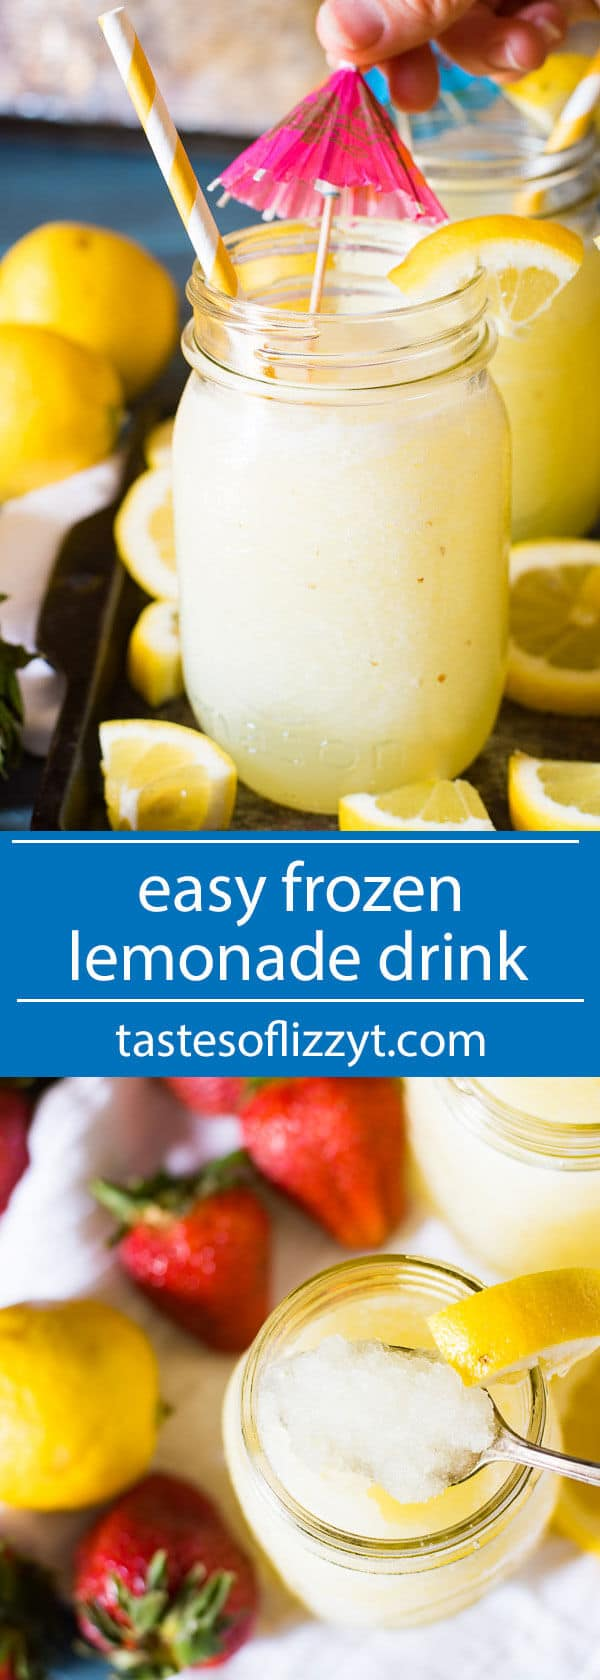 Cool down with this easy frozen lemonade drink at your next picnic. Uses fresh lemon juice and is easily sweetened to your tastes. Throw in some strawberries for a strawberry lemonade flavor! how to make frozen lemonade / summer kids drink / summer drink for kids